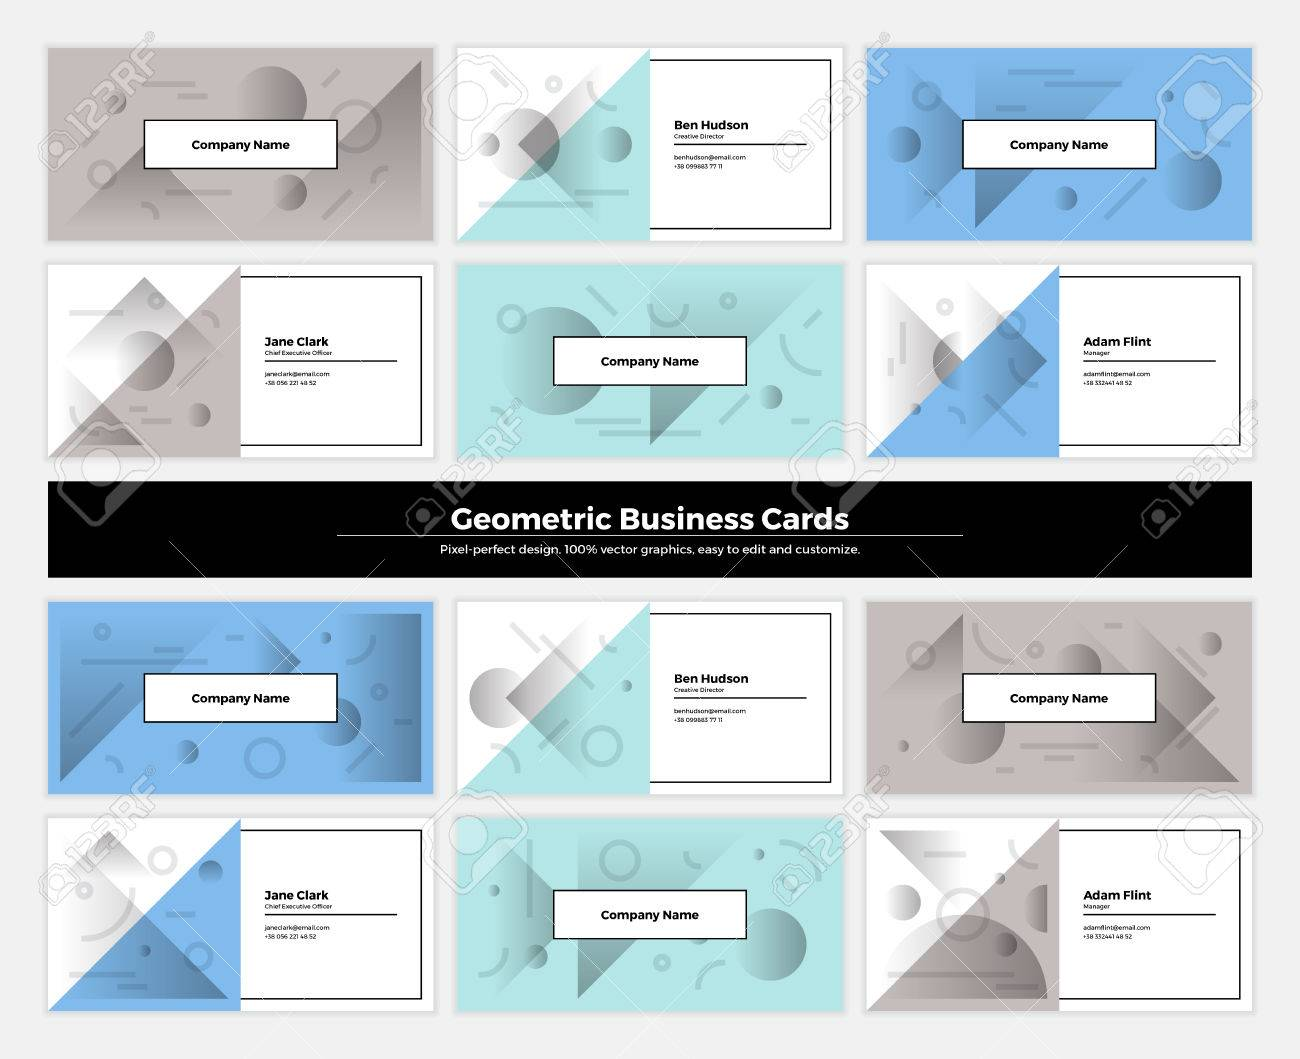 Geometric business cards with pattern background modern clean geometric business cards with pattern background modern clean design geometry texture vector abstract branding reheart Image collections